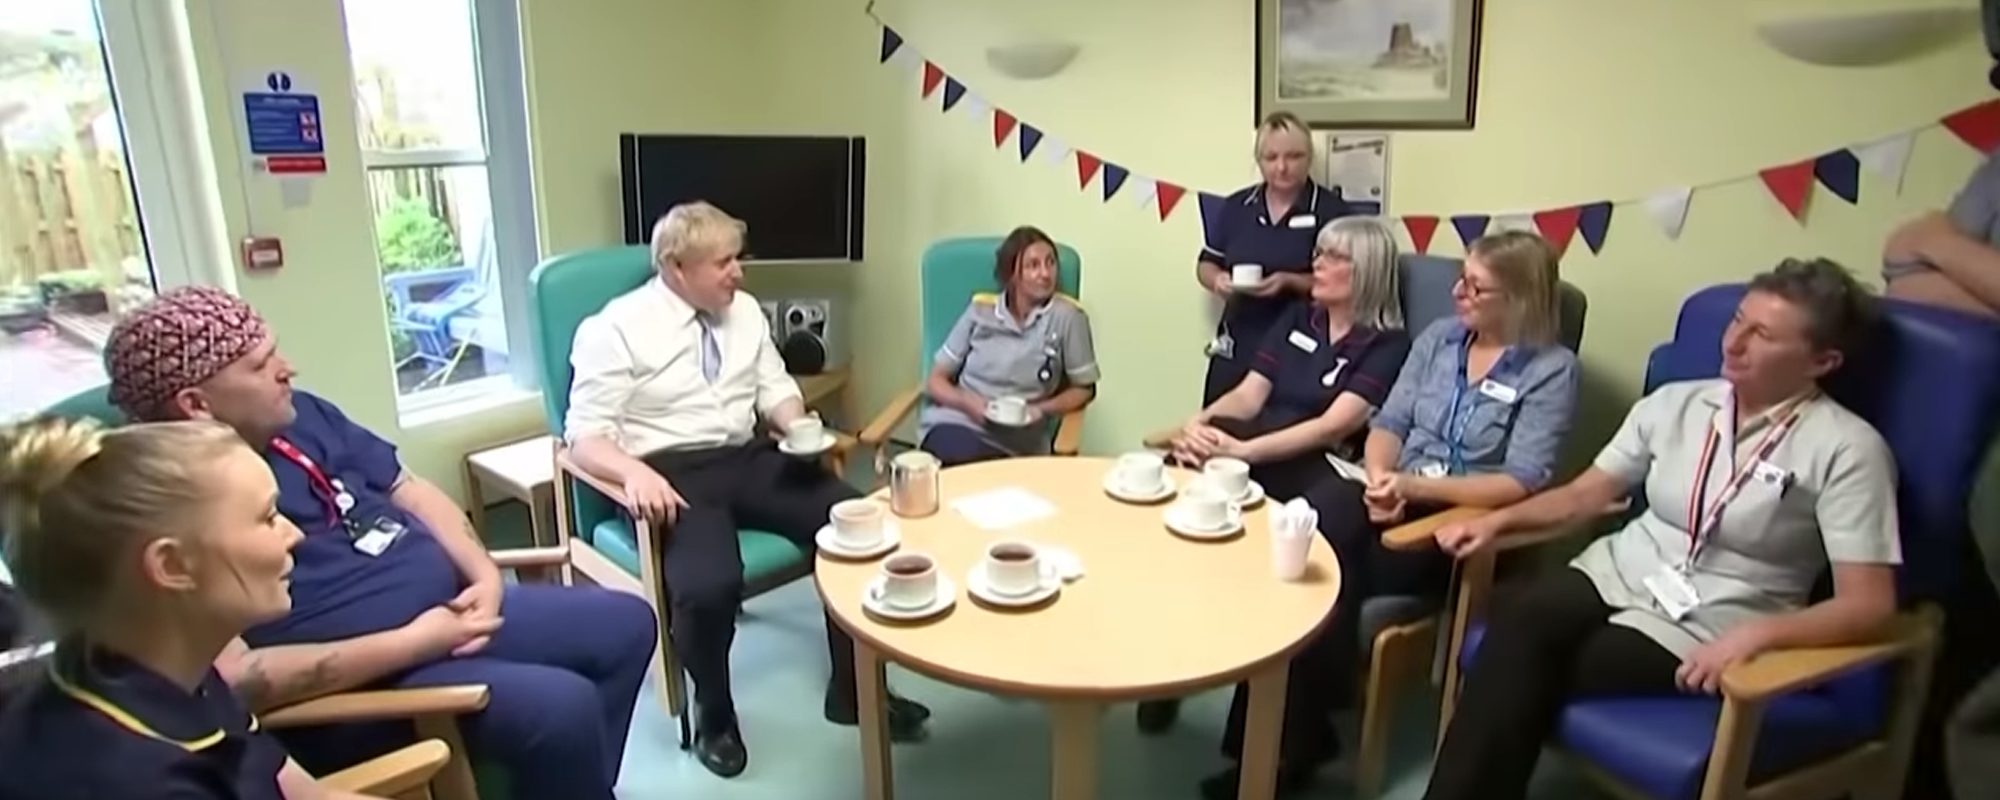 Boris Johnson challenged by nurses over NHS pledges